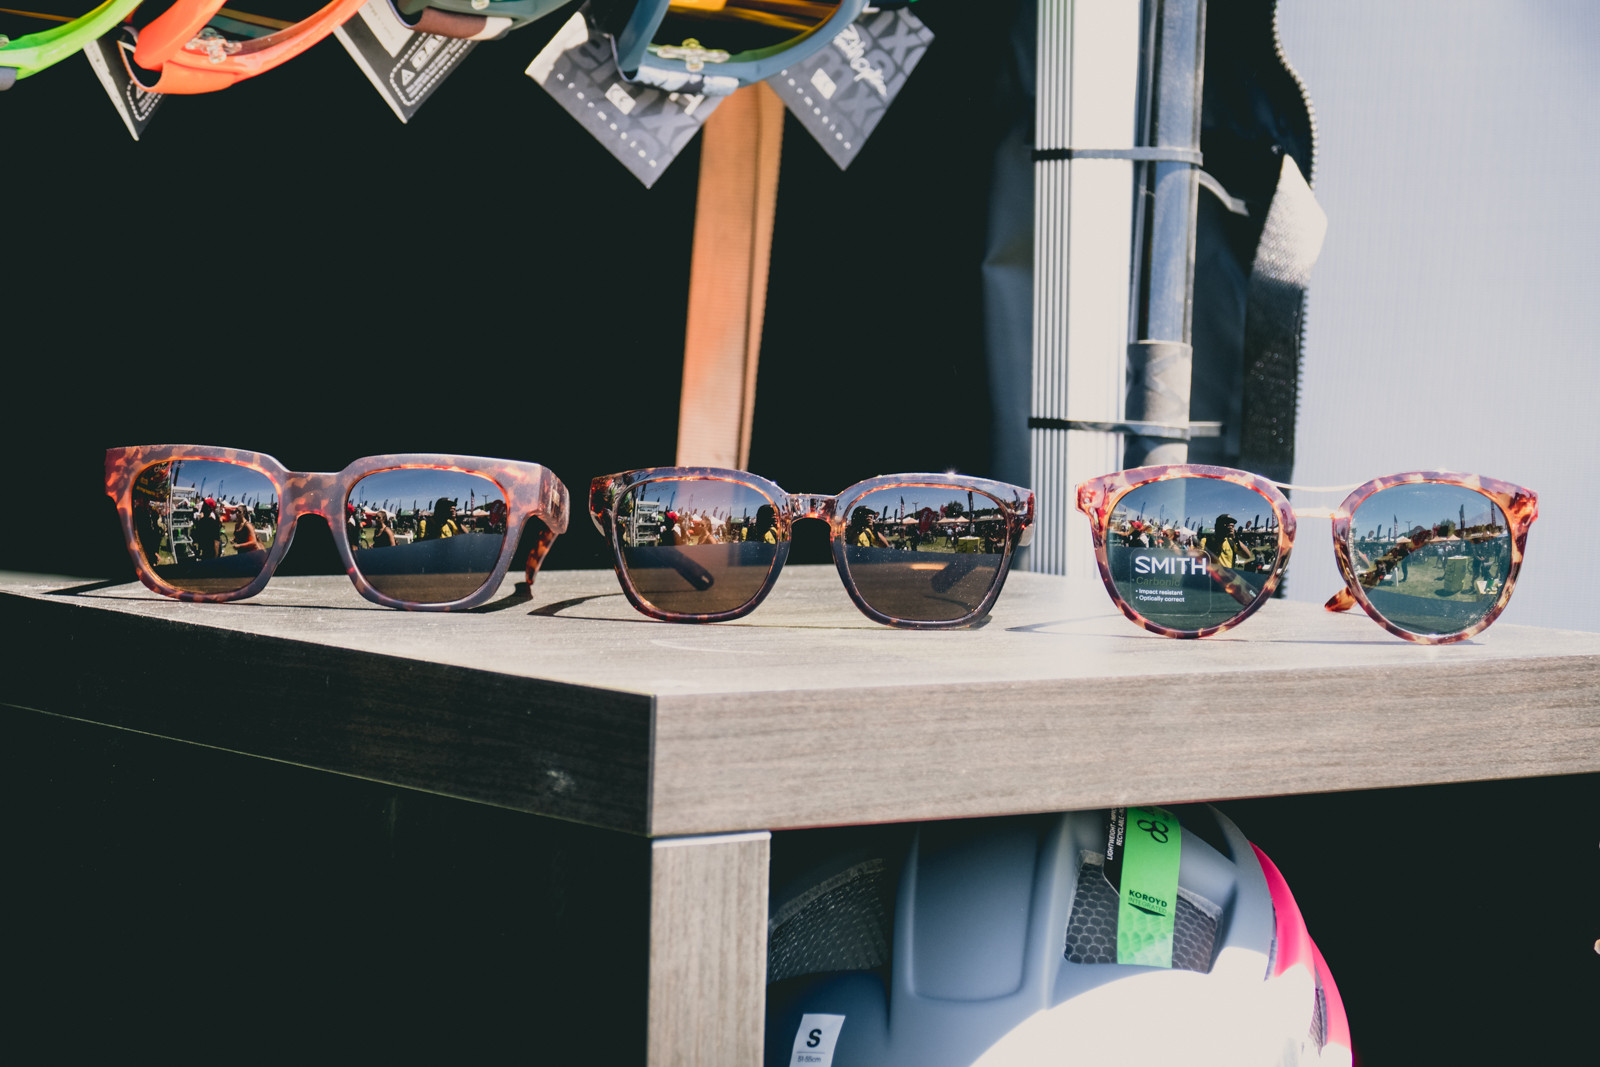 Fresh Smith Shades - 2016 Sea Otter Classic Pit Bits - Mountain Biking Pictures - Vital MTB